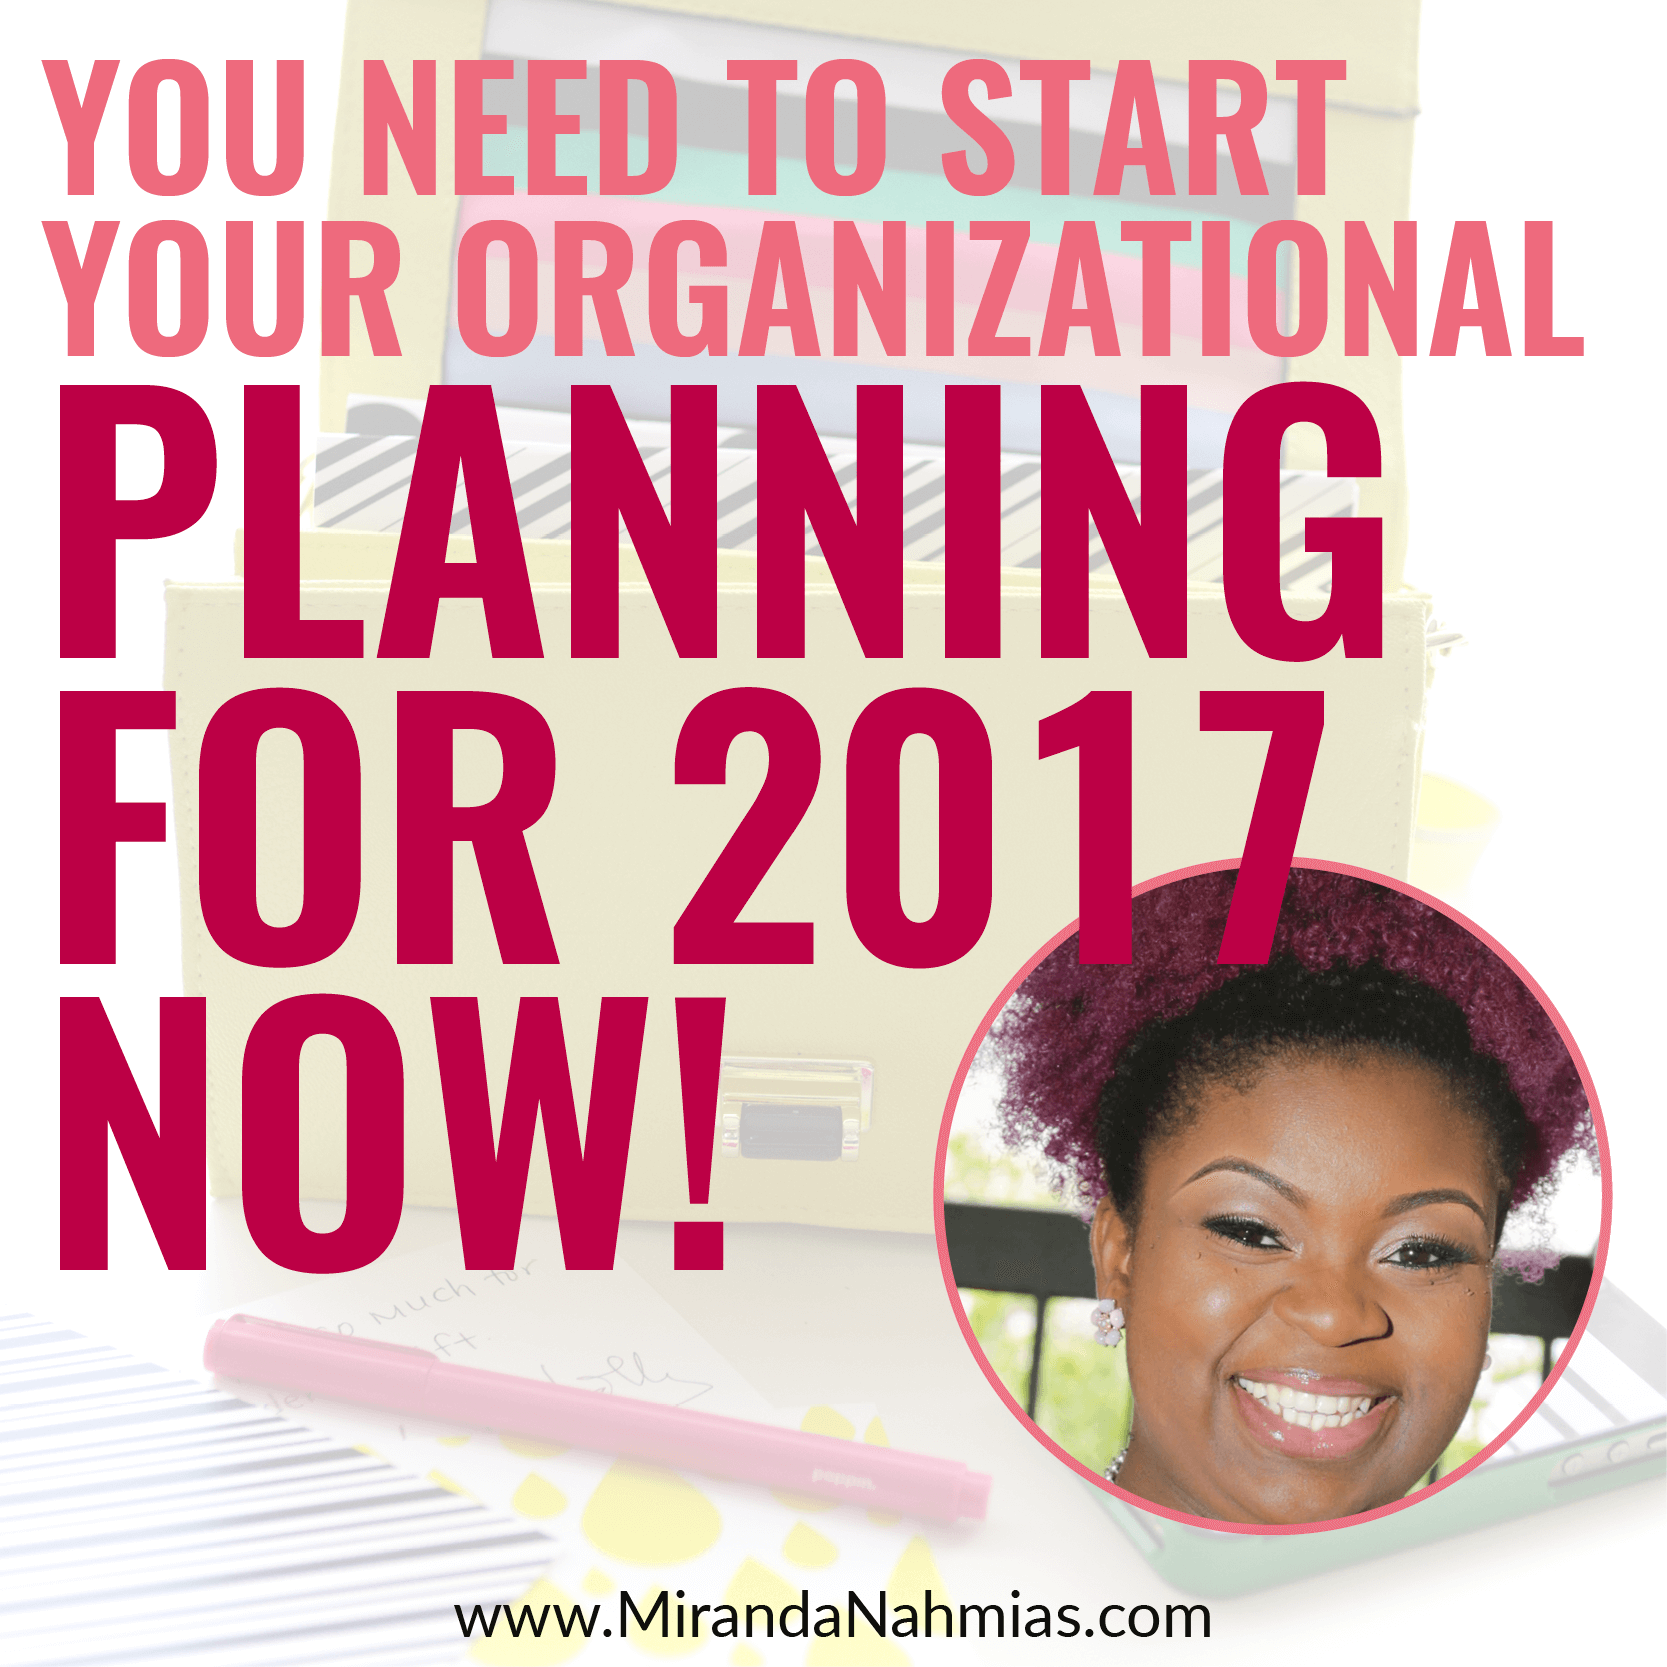 you need to start your organizational planning for 2017 now